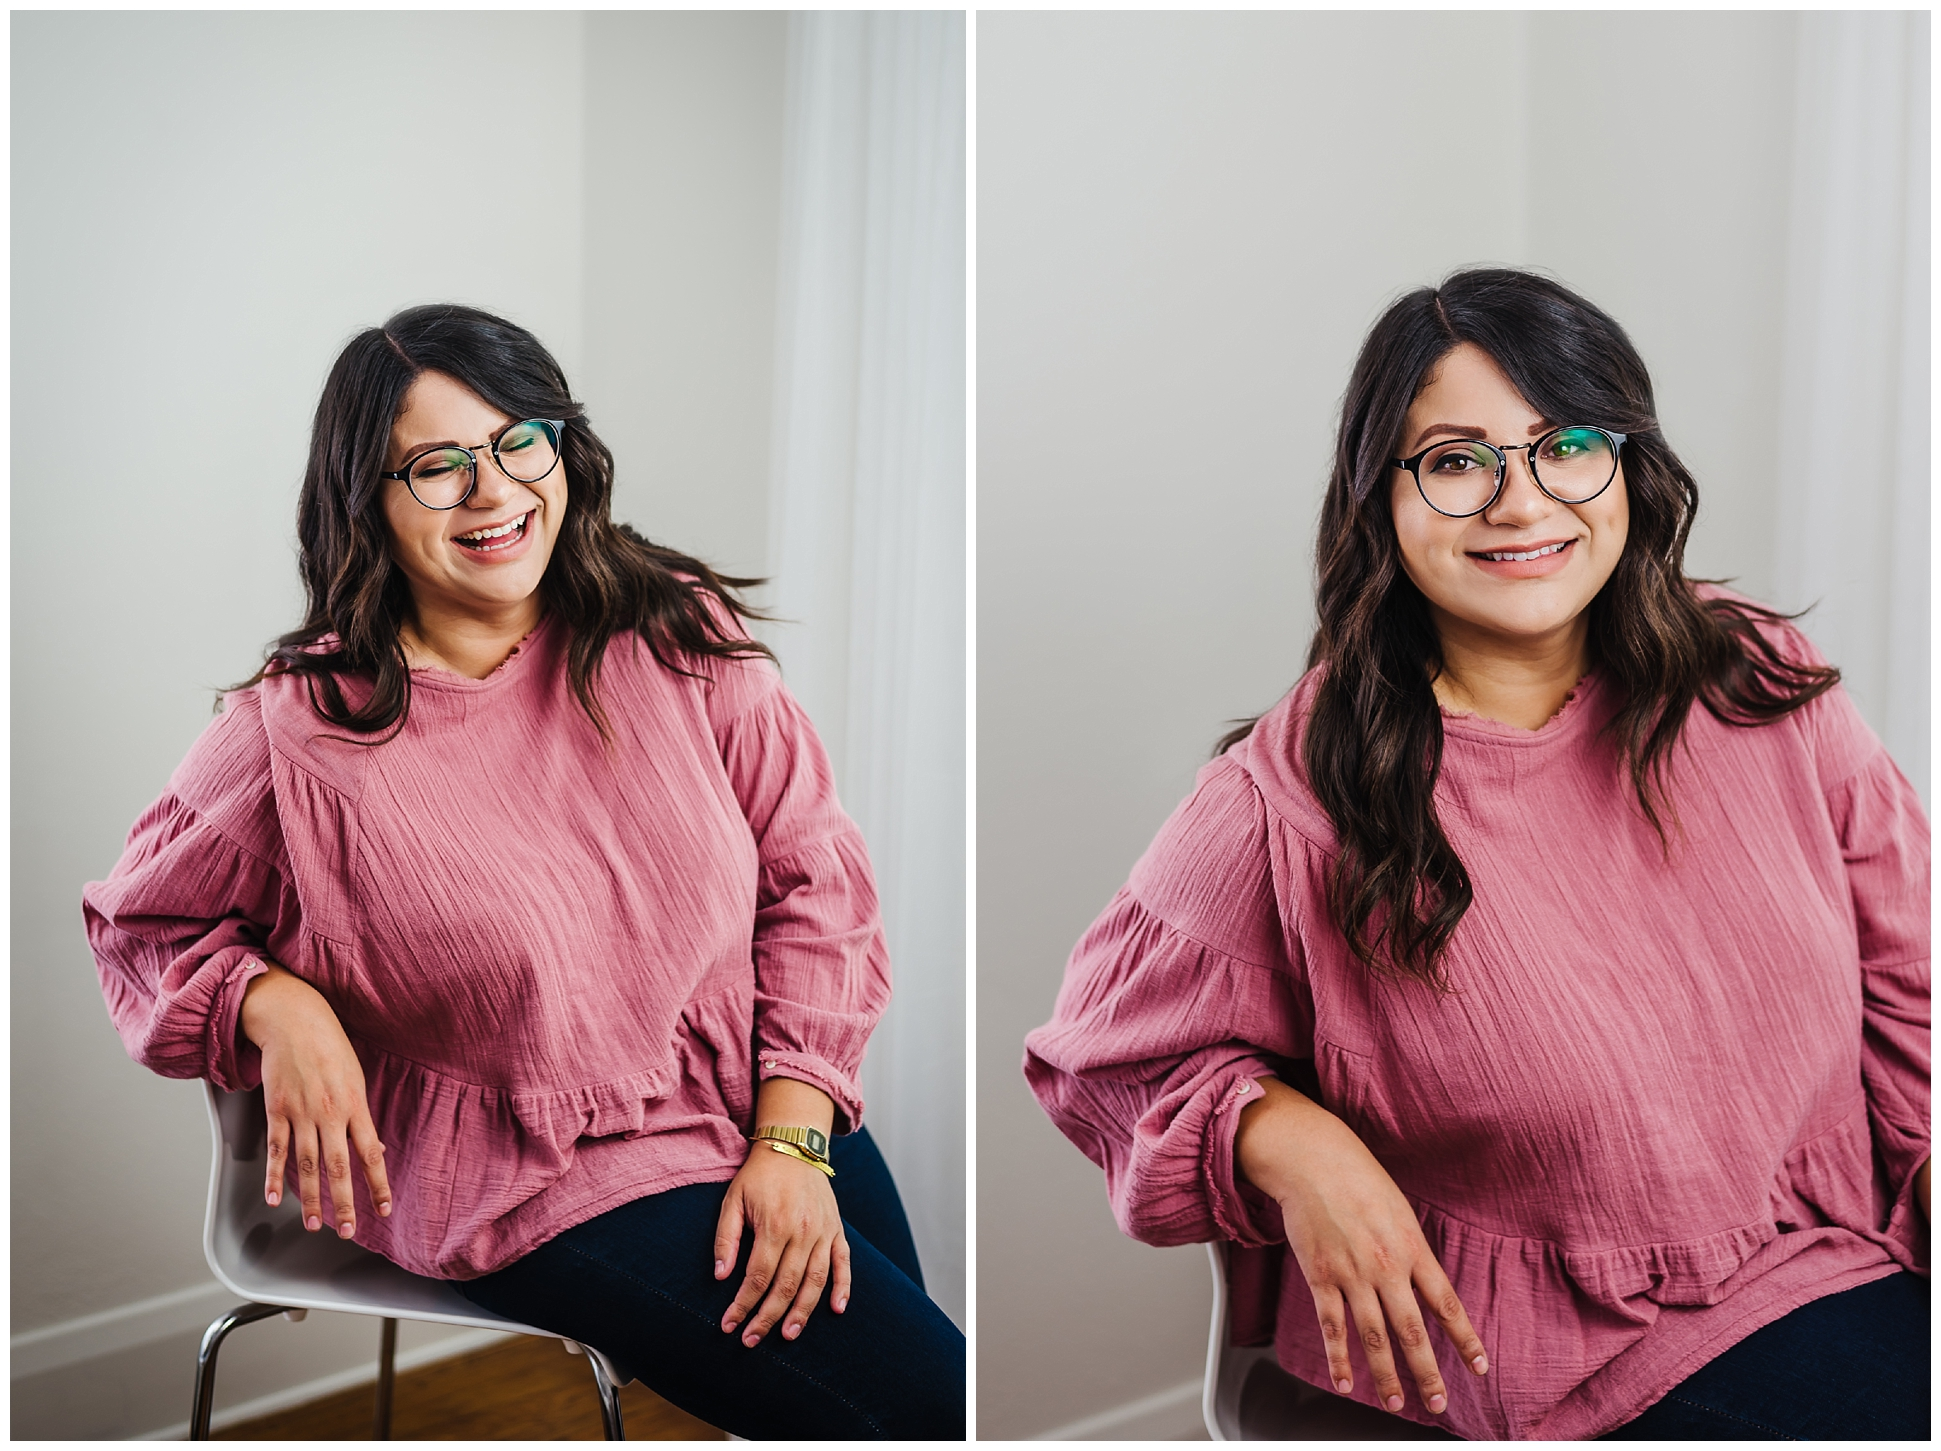 Tampa-portrait-photographer-pink-backdrop-glasses-nerd-expressive_0120.jpg